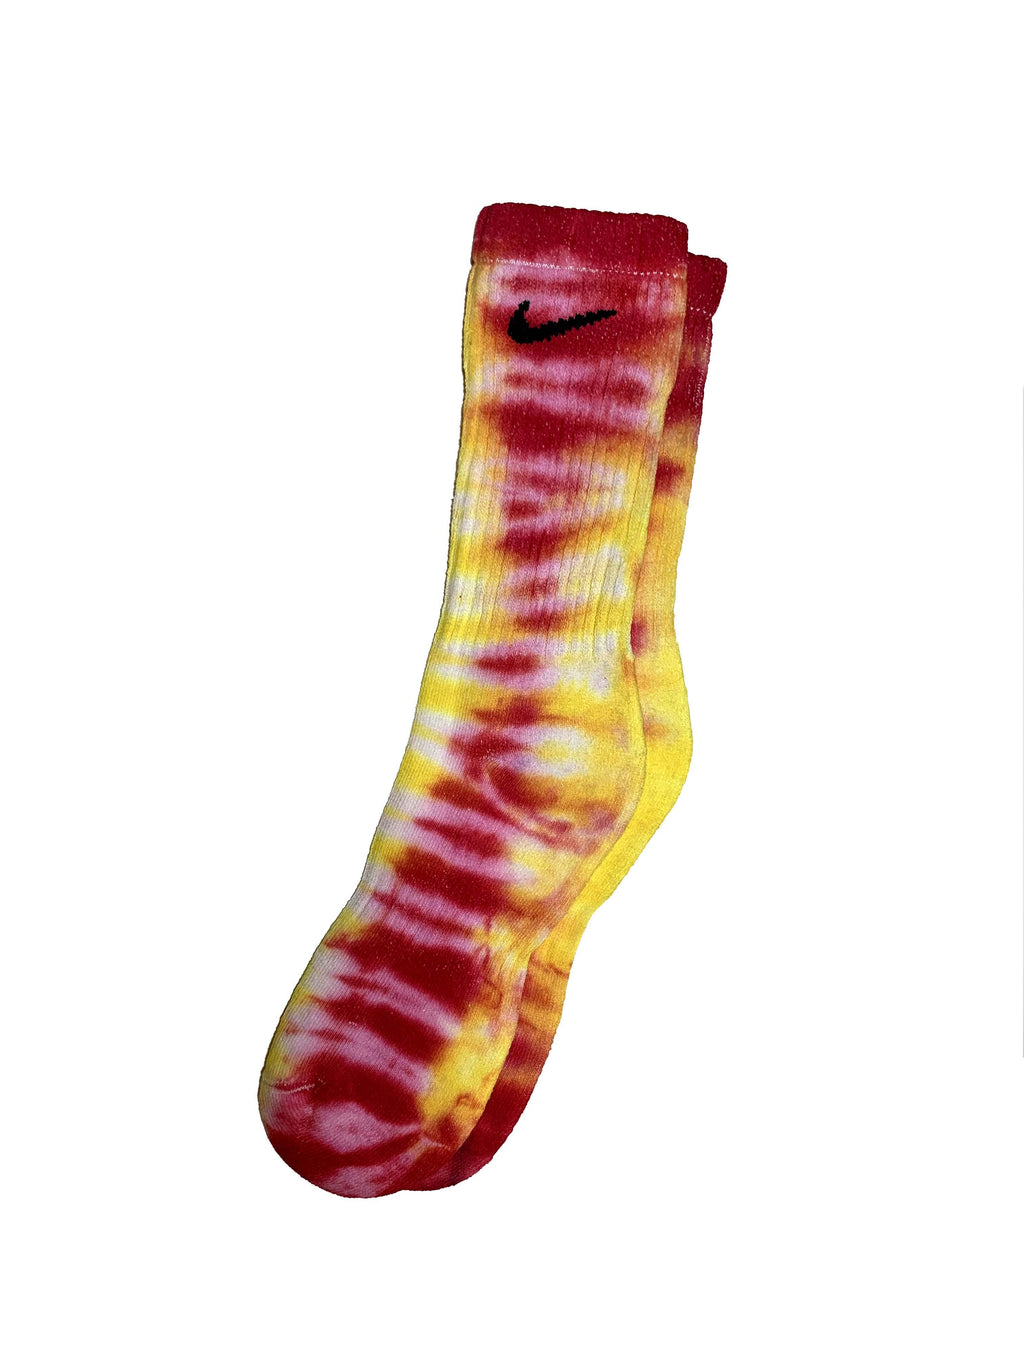 Fall19 Custom Tie Dye Nike Socks - Red & Yellow